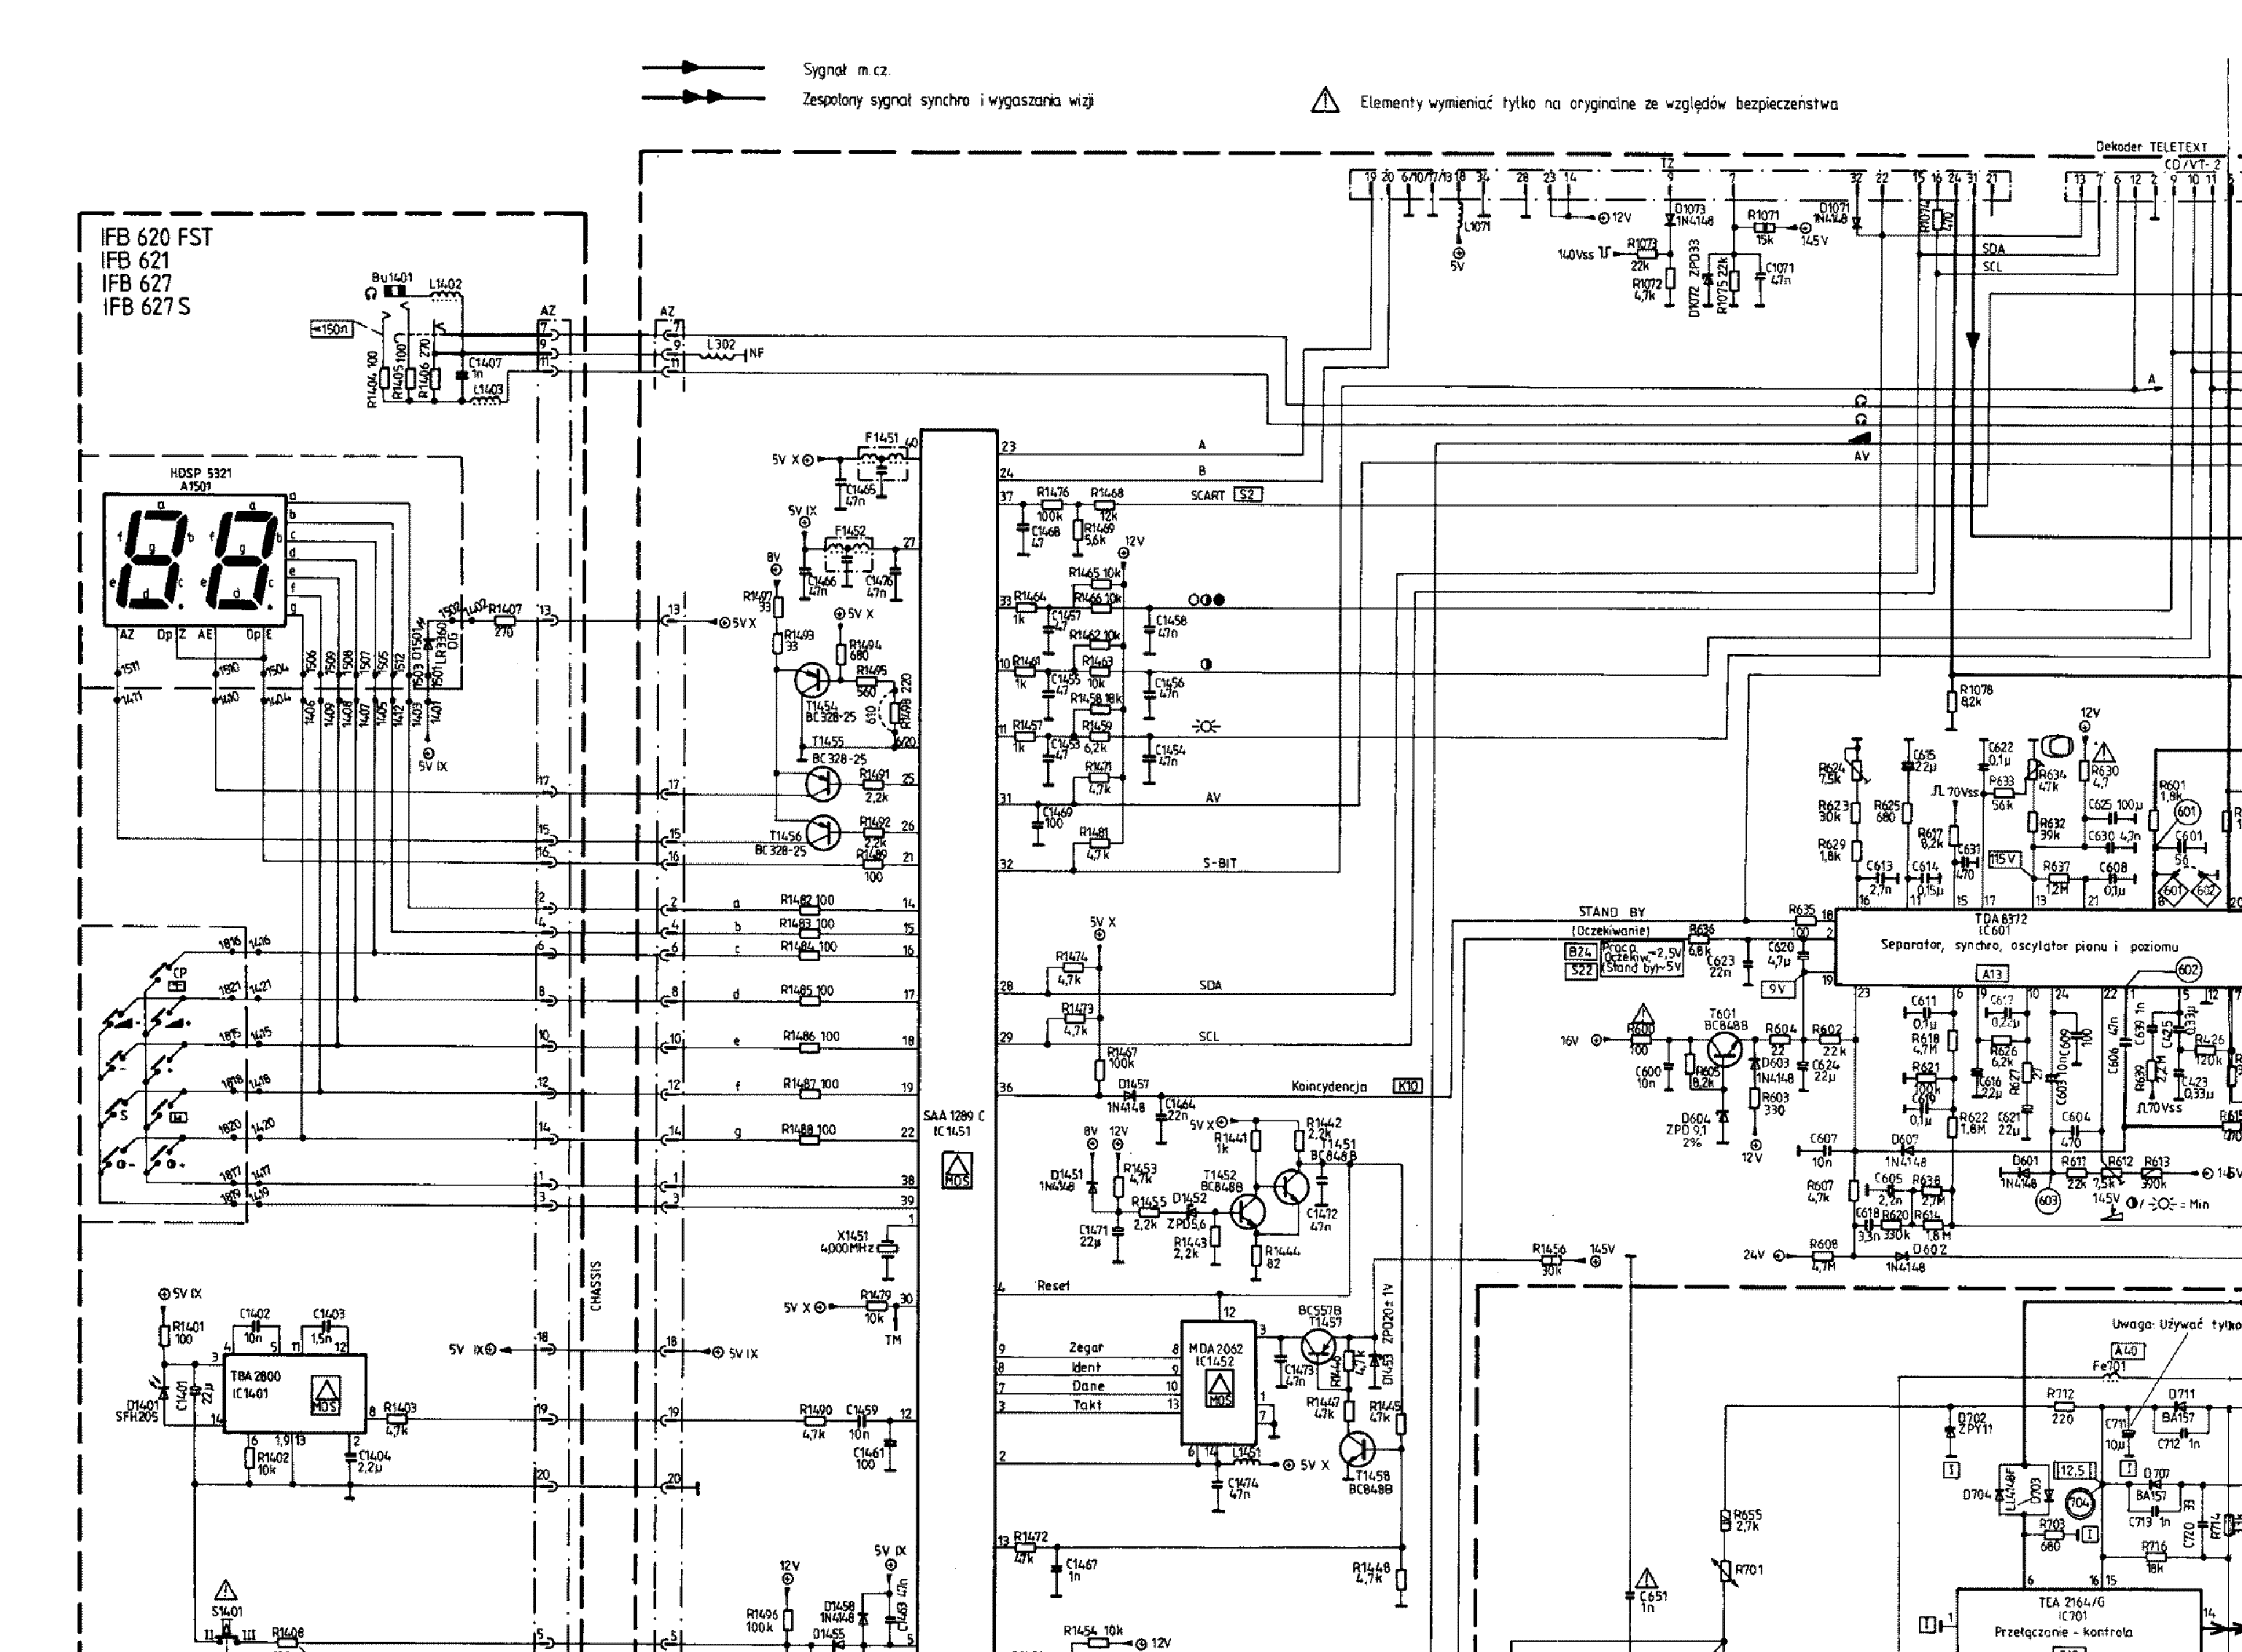 schematic 5530 nokia  u2013 the wiring diagram  u2013 readingrat net